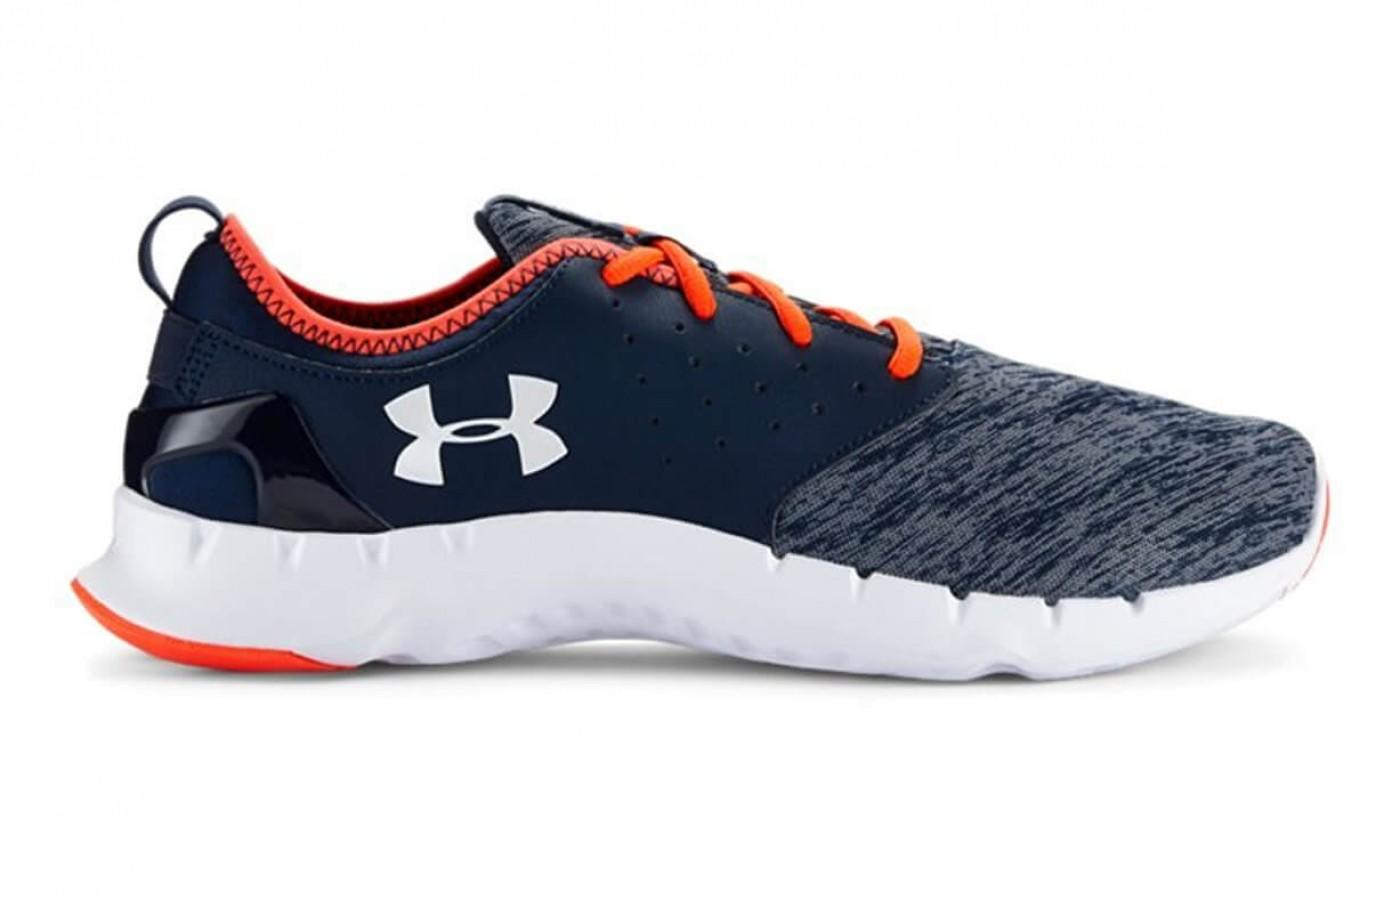 the Under Armour Flow Twist from the right